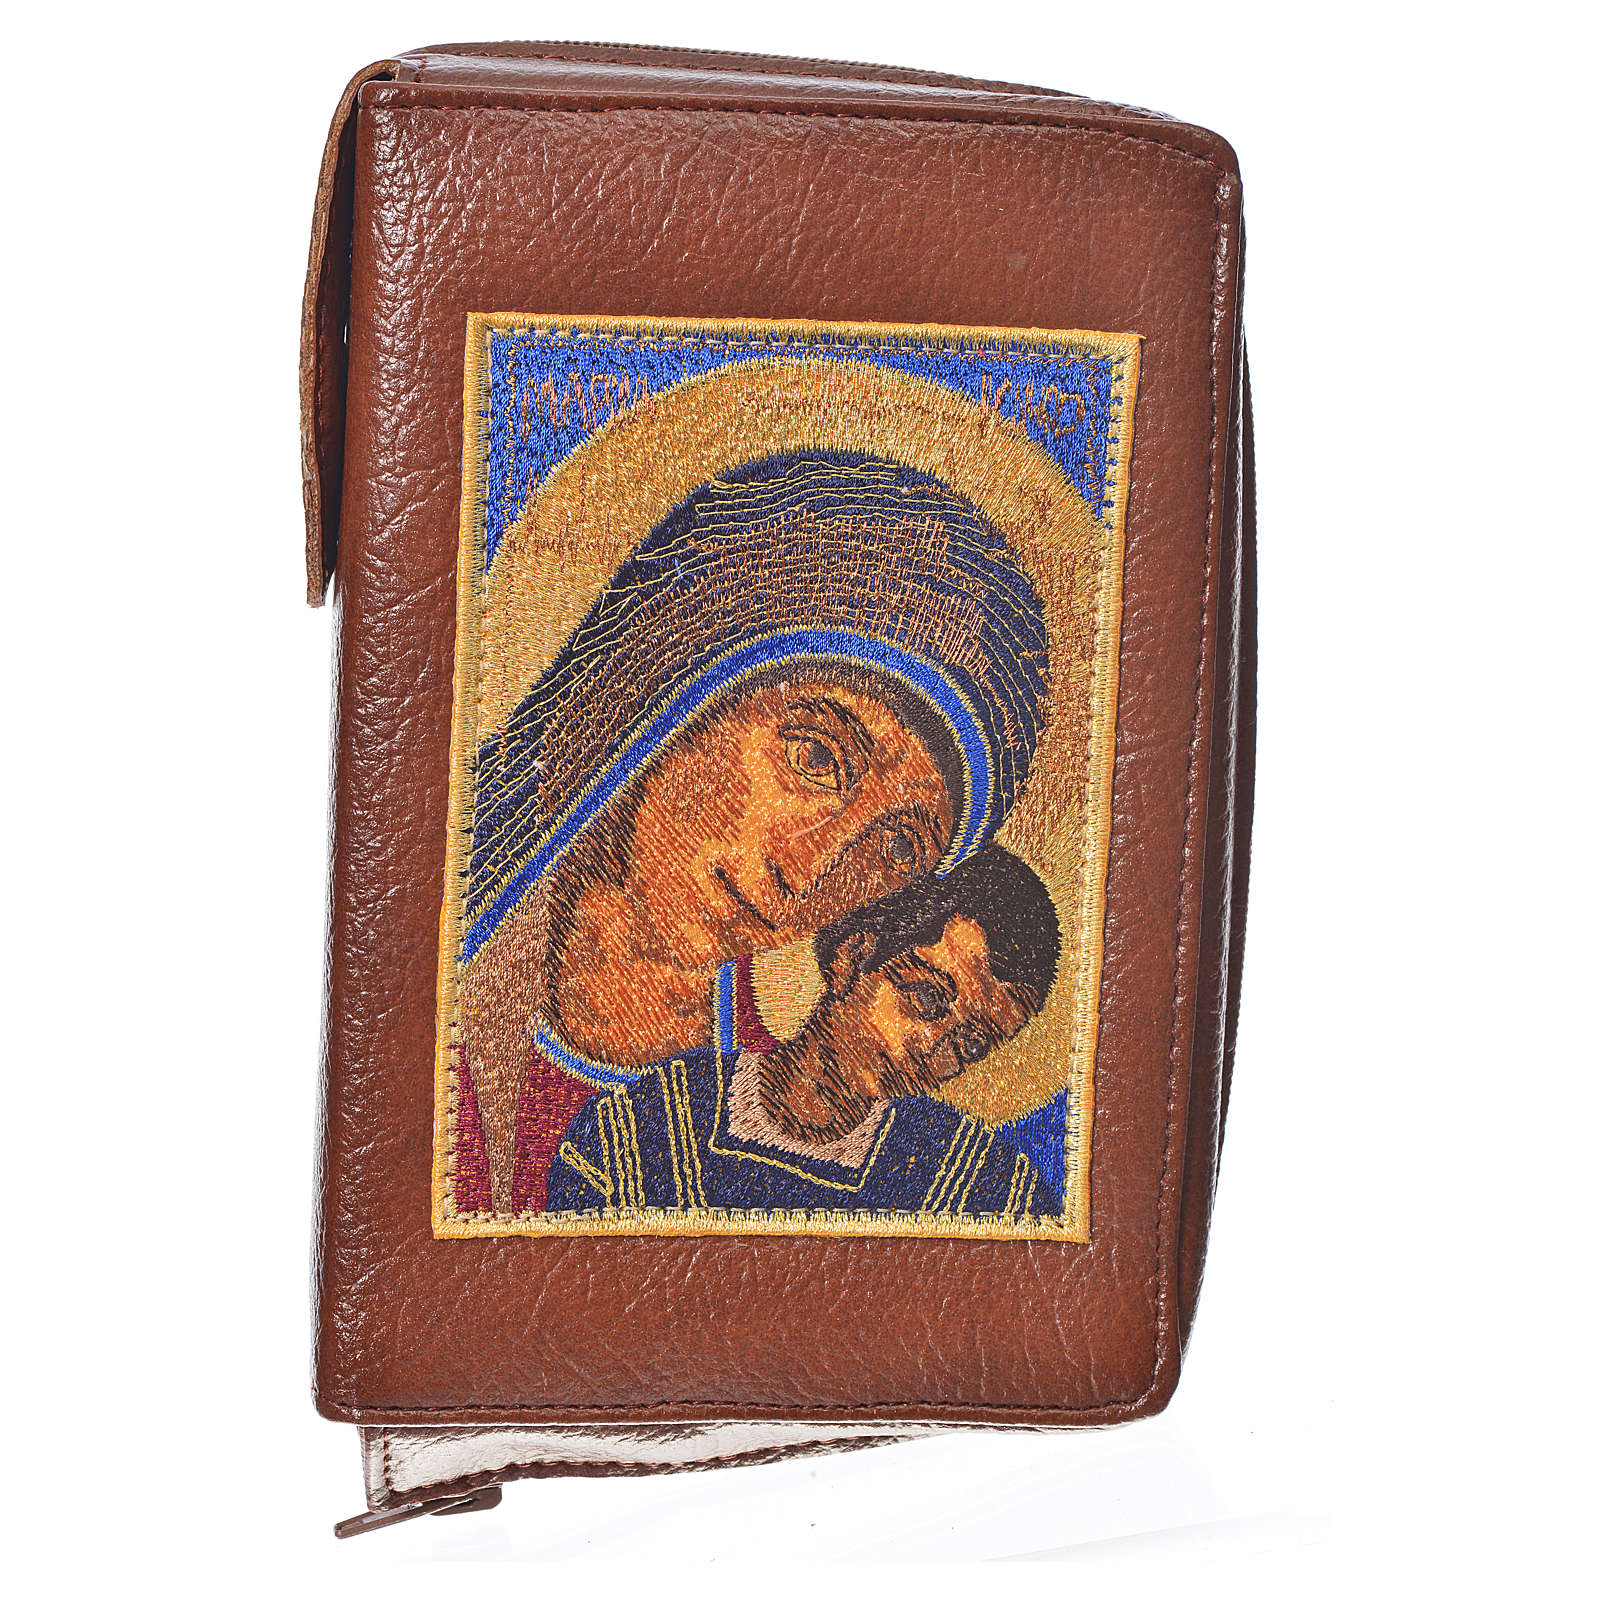 Liturgy of the Hours cover in bonded leather, Virgin Mary of Kiko 4